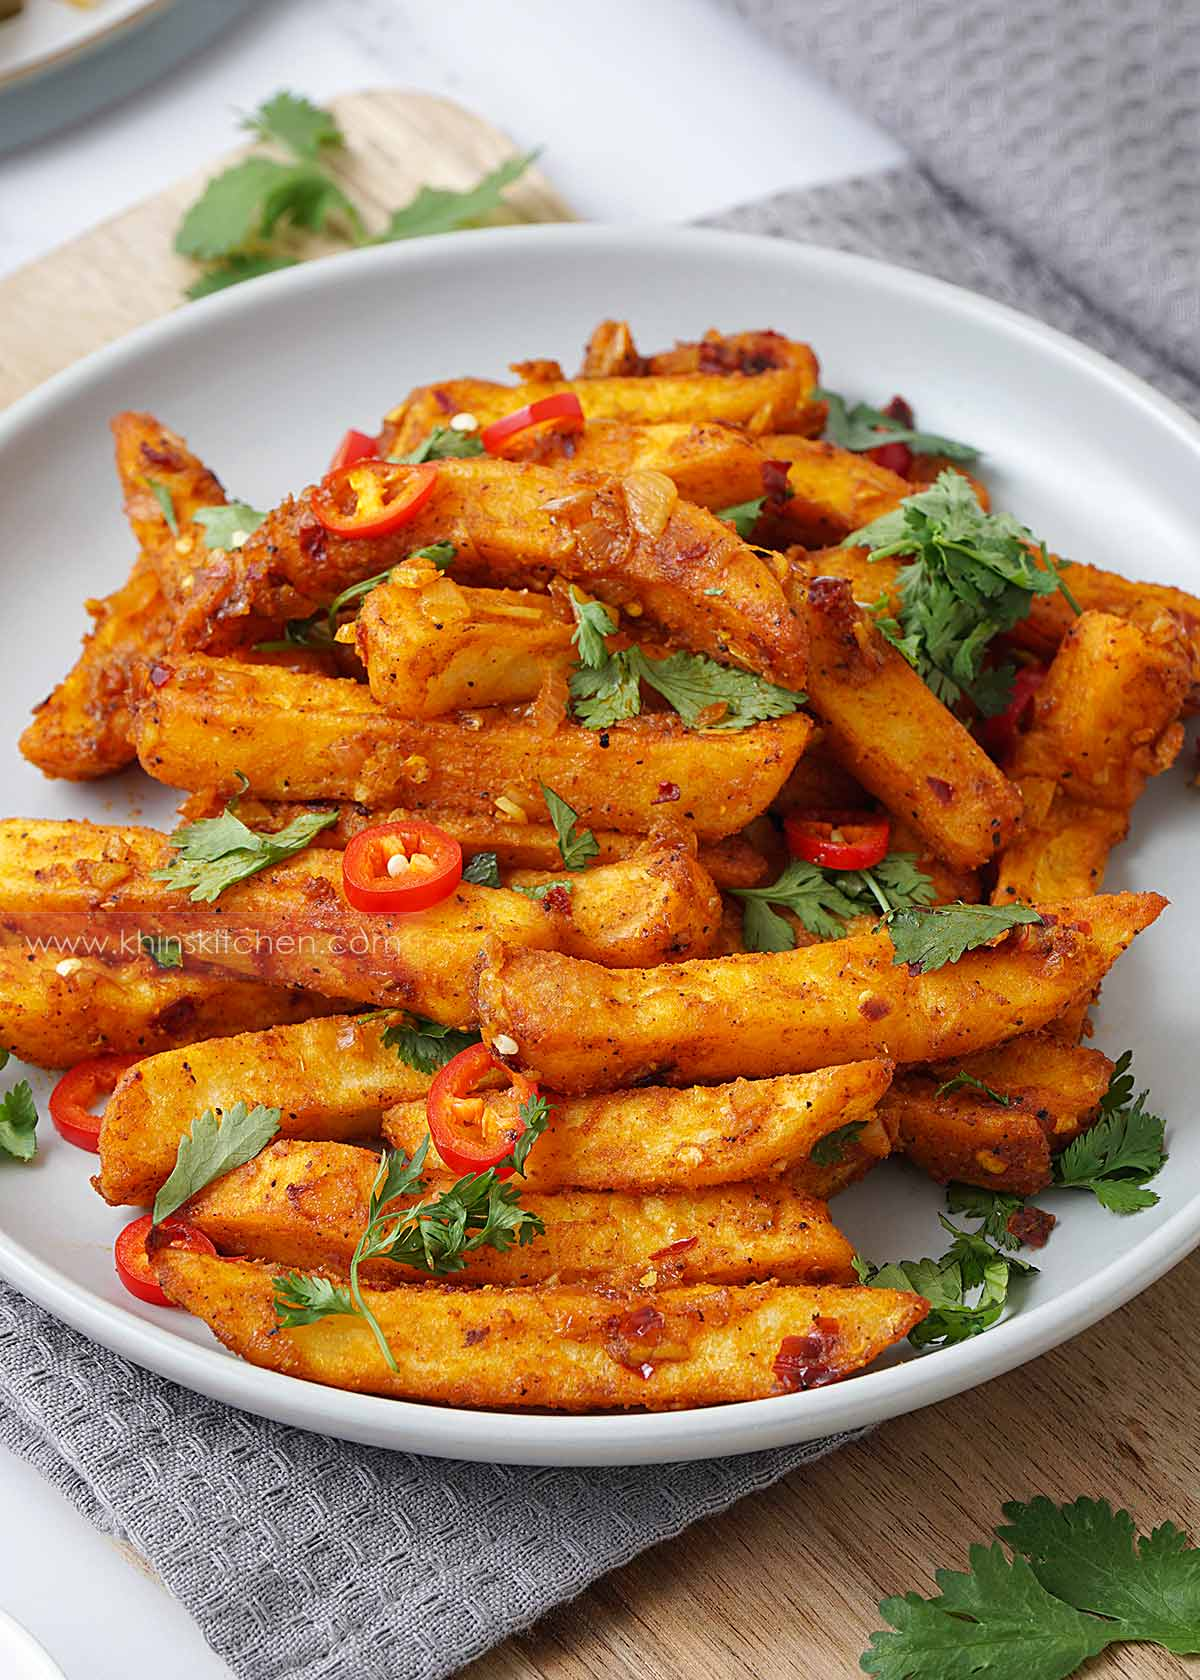 A grey plate containing spicy fried chips topped with sliced chilli and coriander.